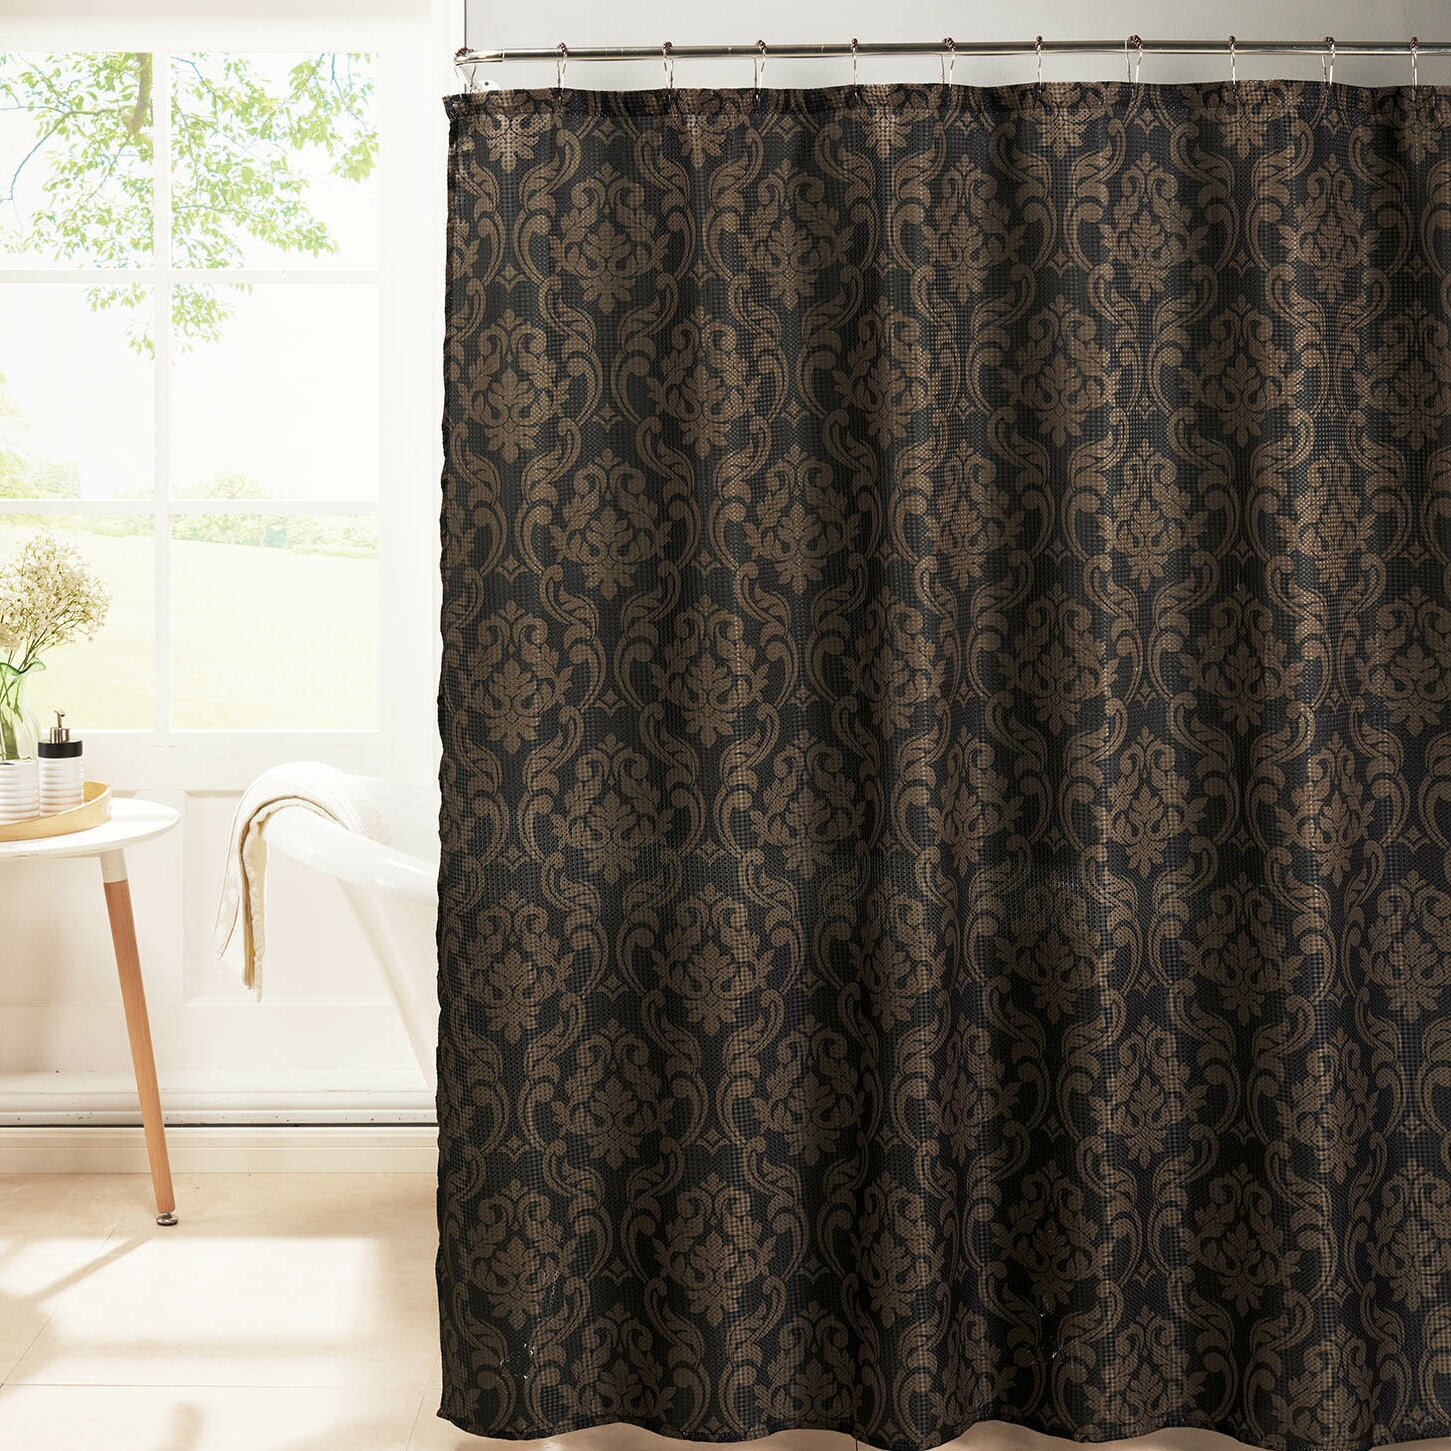 bath studio diamond weave textured shower curtain set